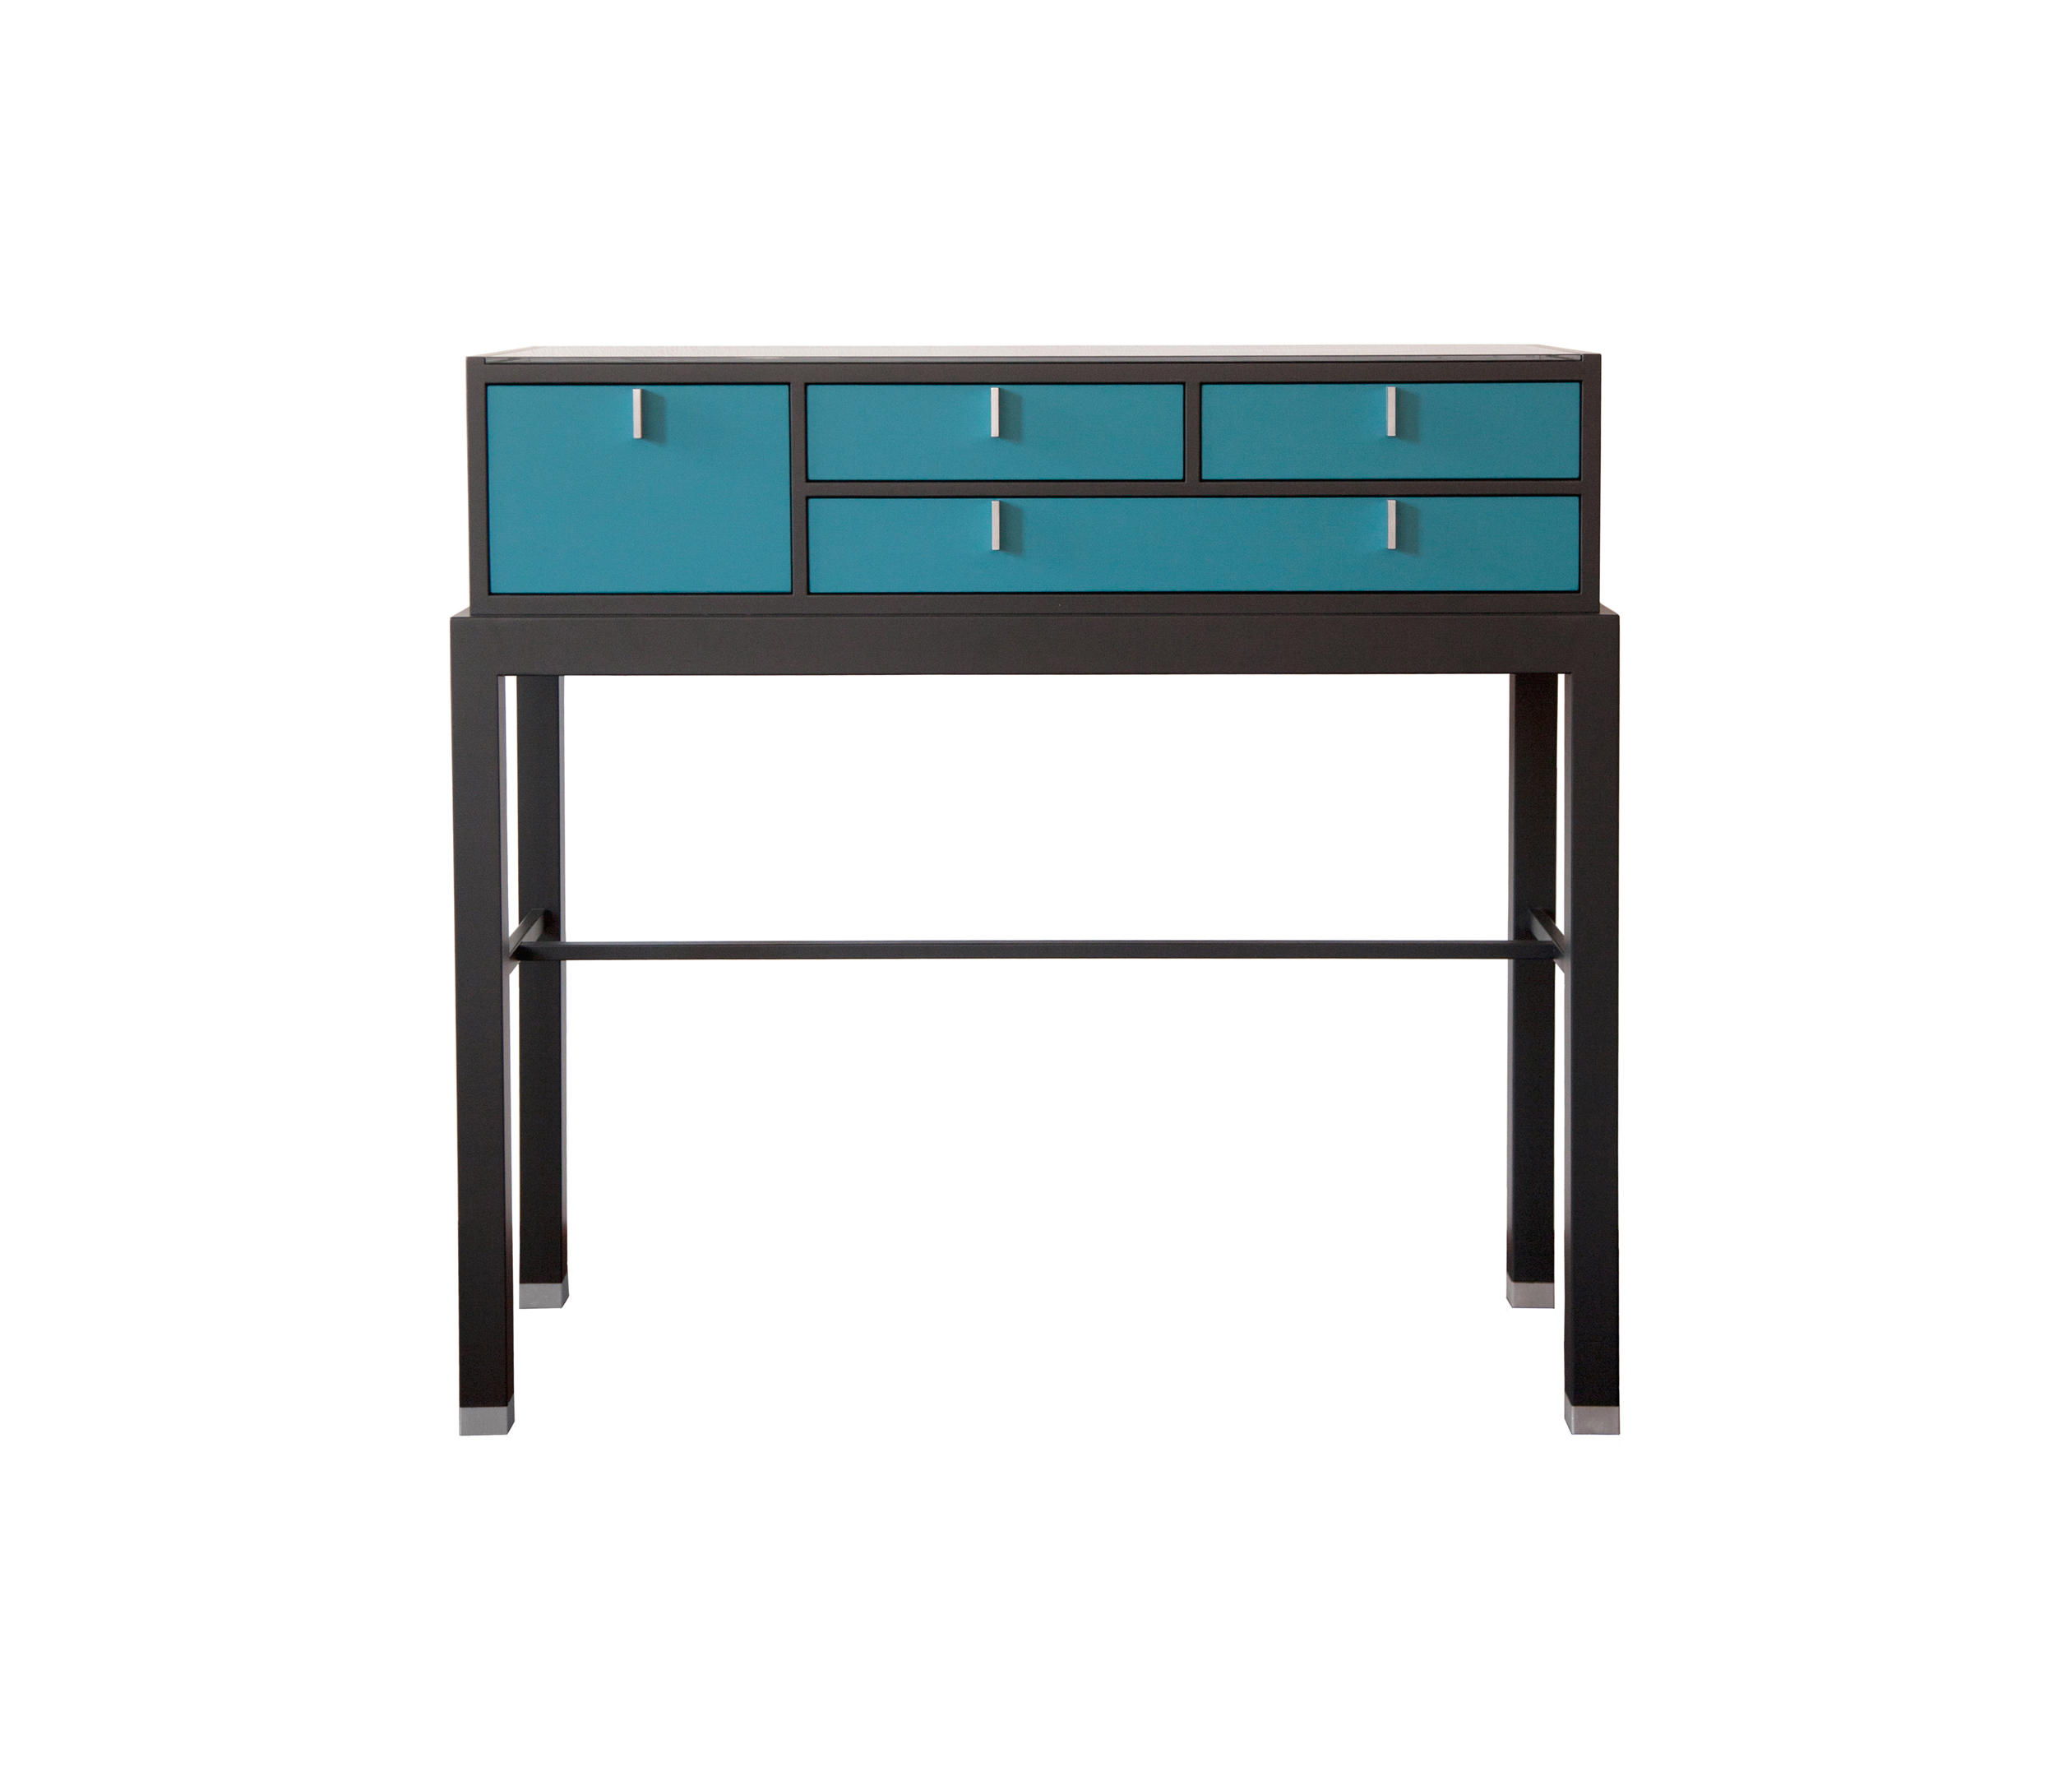 Ching sideboard consolle olby design architonic for Consolle di design